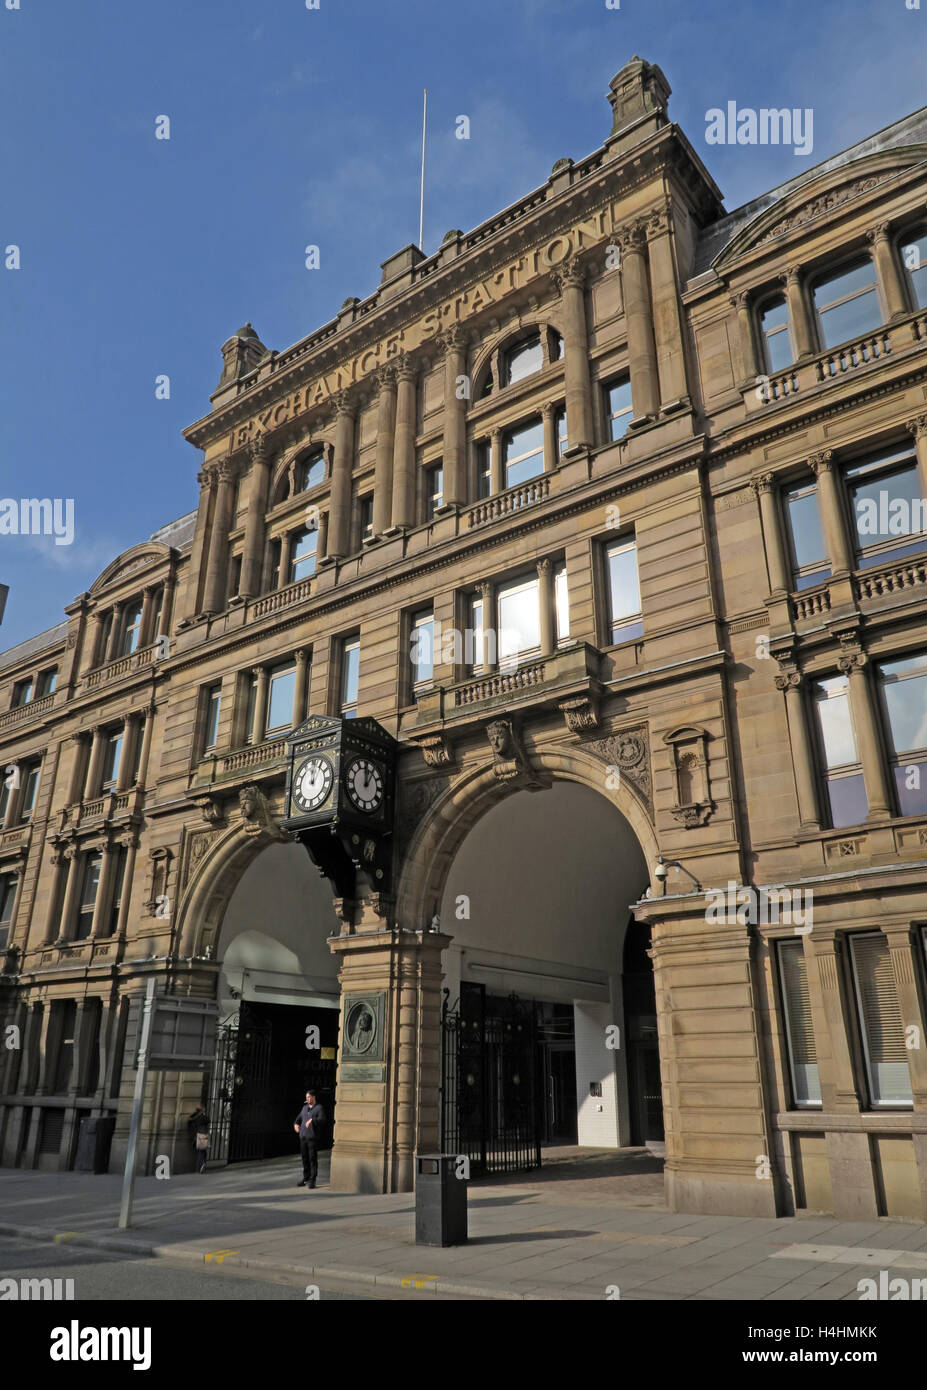 Exchange Rail Station building,Liverpool,England,UK - Stock Image